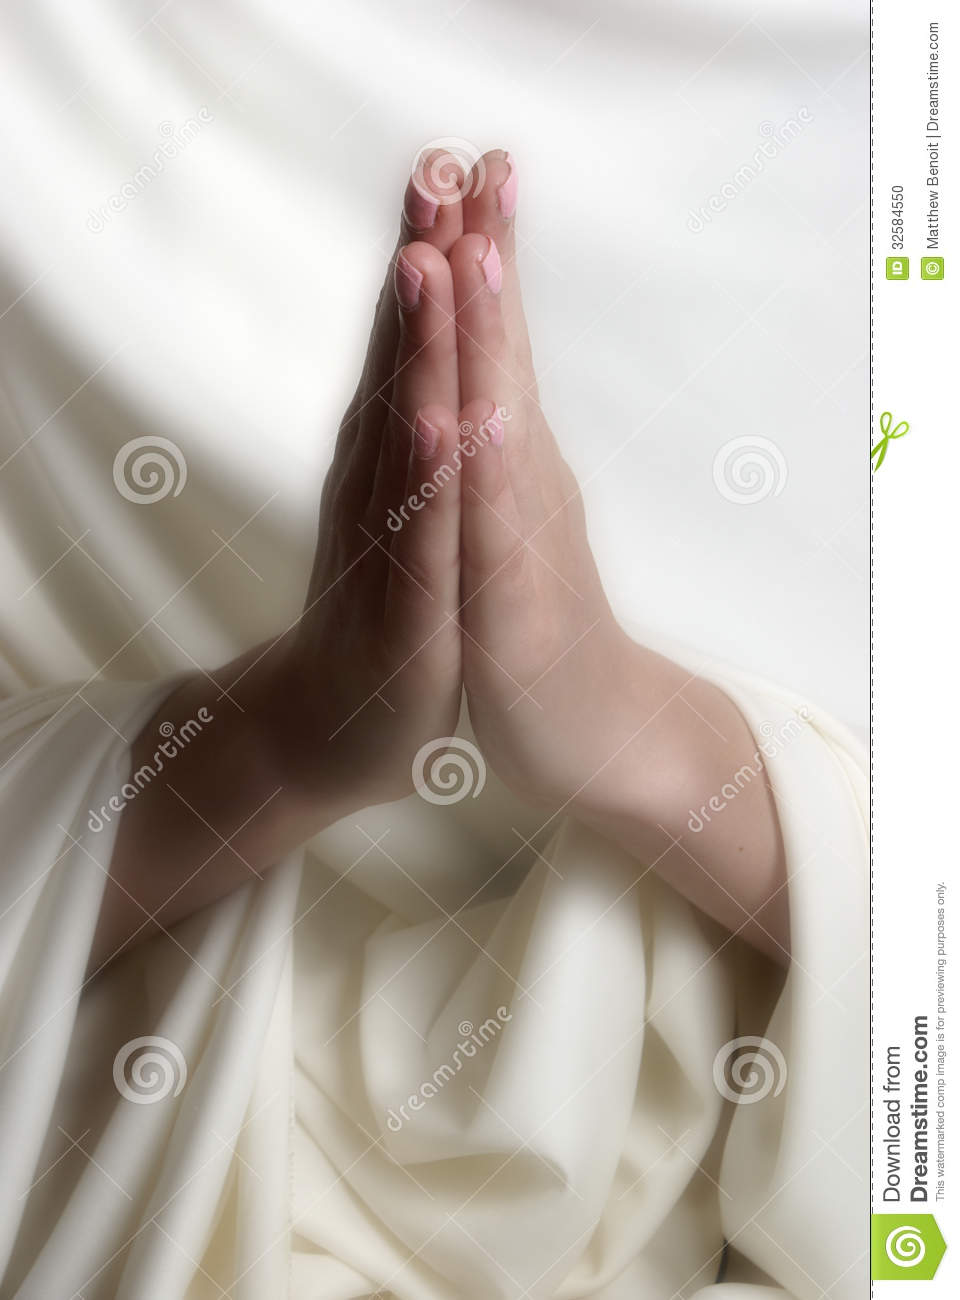 Pray Together Clipart Praying hands